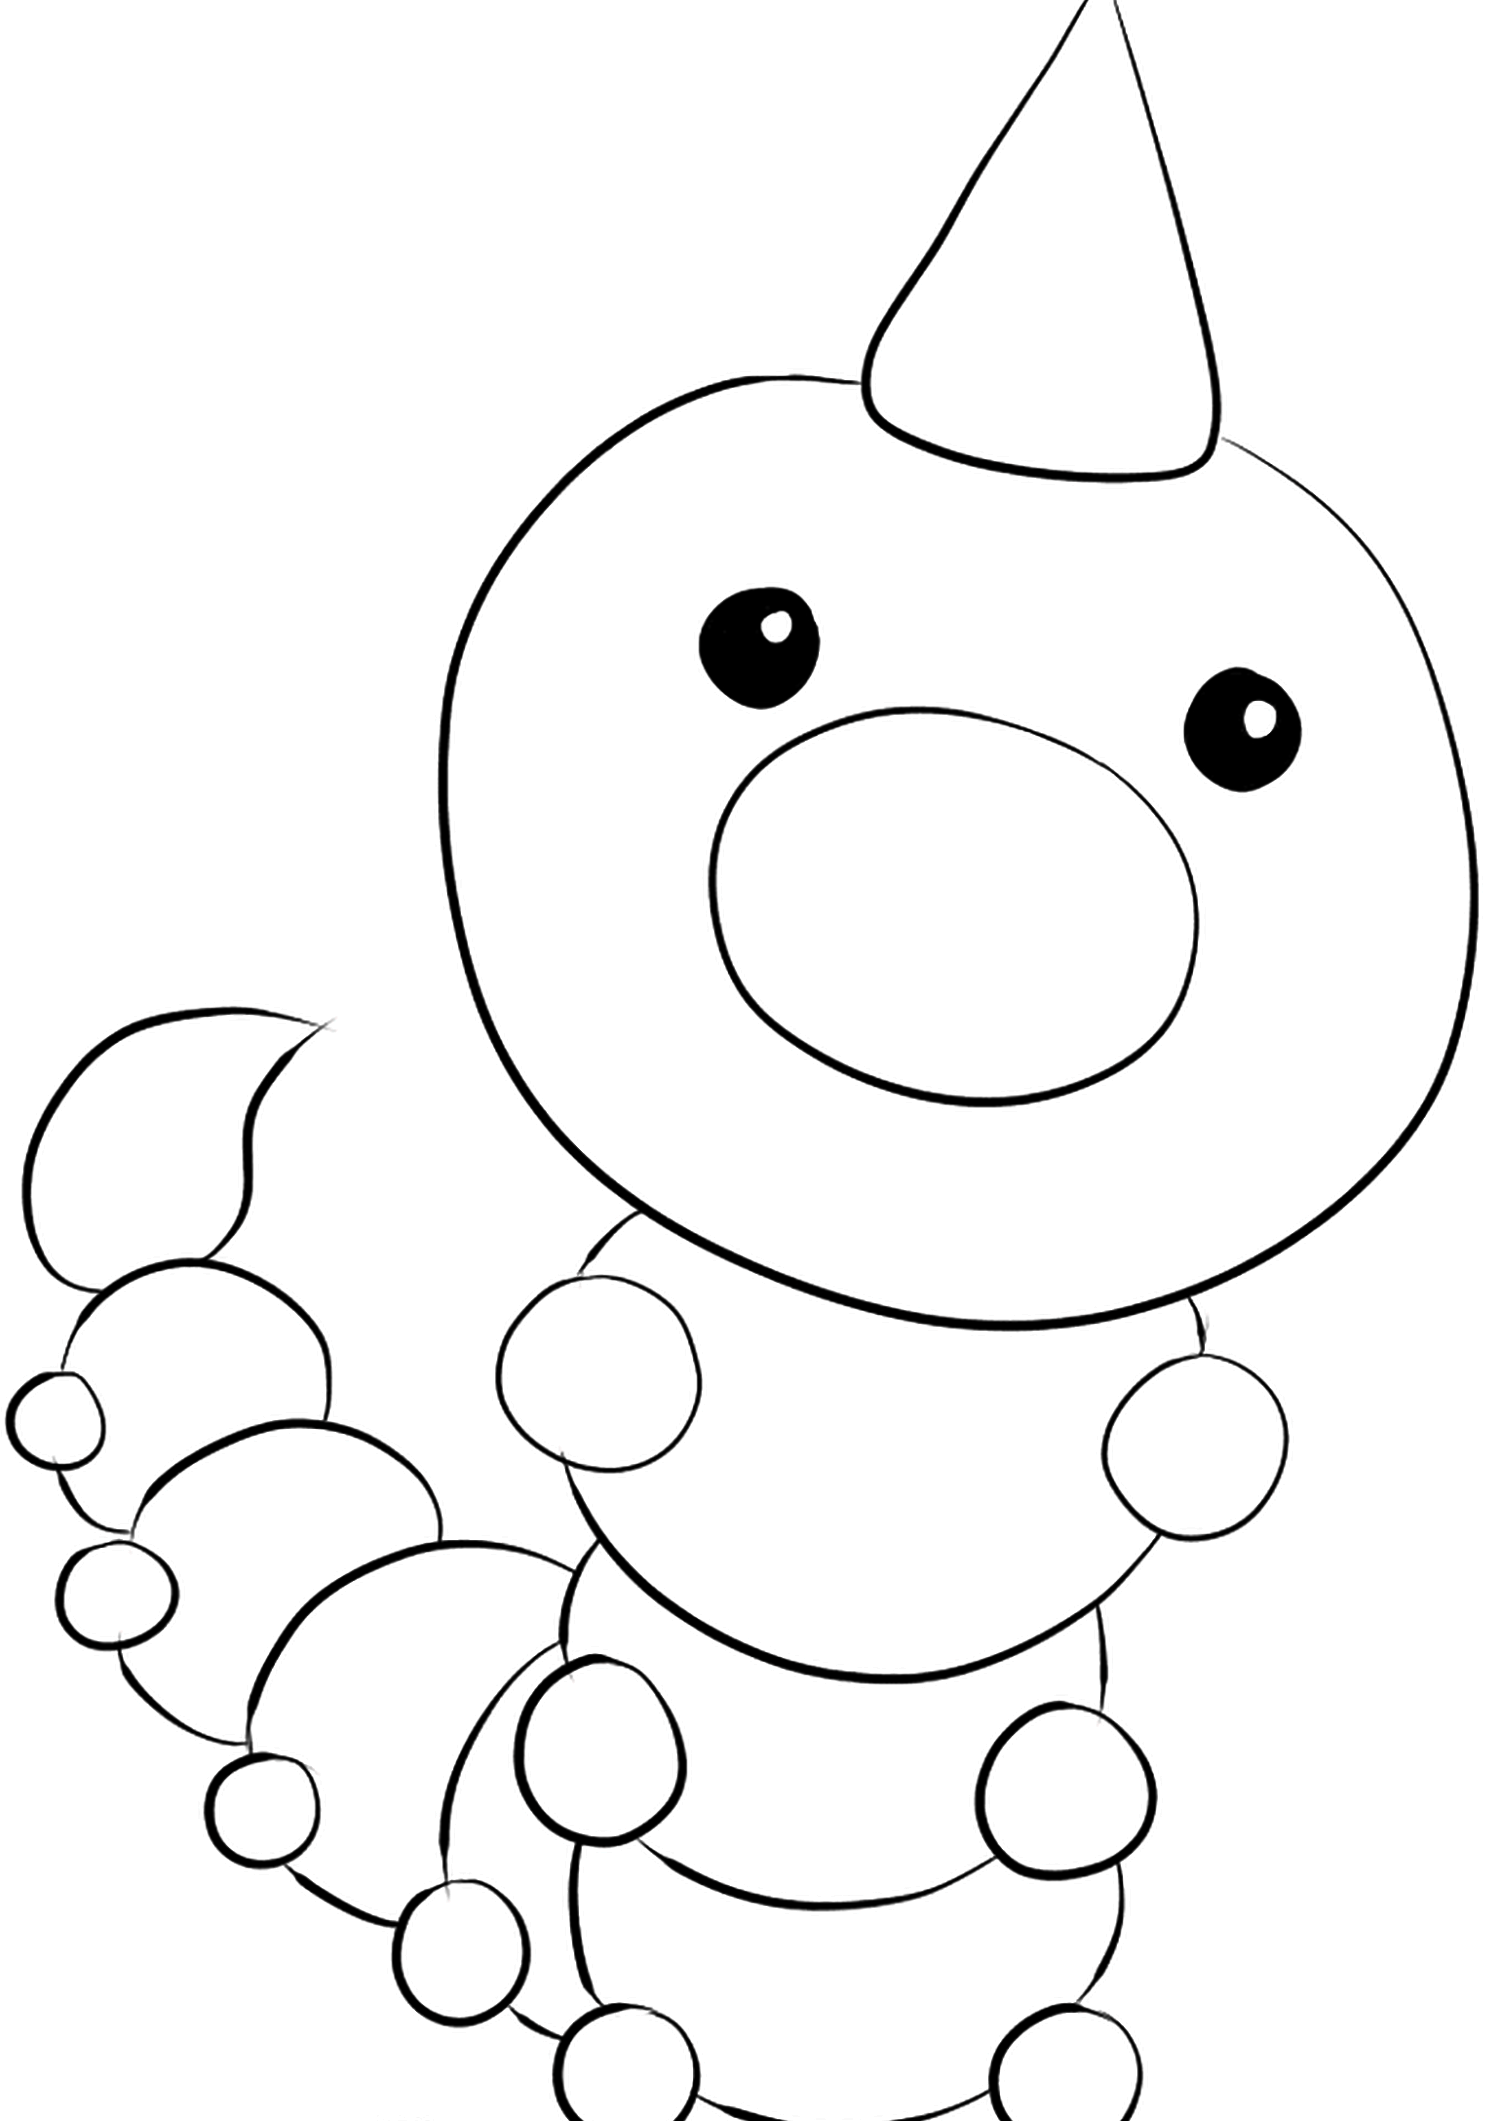 Aspicot (No.13)Coloriage de Aspicot (Weedle), Pokémon de Génération I, de type : Insecte et PoisonOriginal image credit: Pokemon linearts by Lilly Gerbil'font-size:smaller;color:gray'>Permission: All rights reserved © Pokemon company and Ken Sugimori.